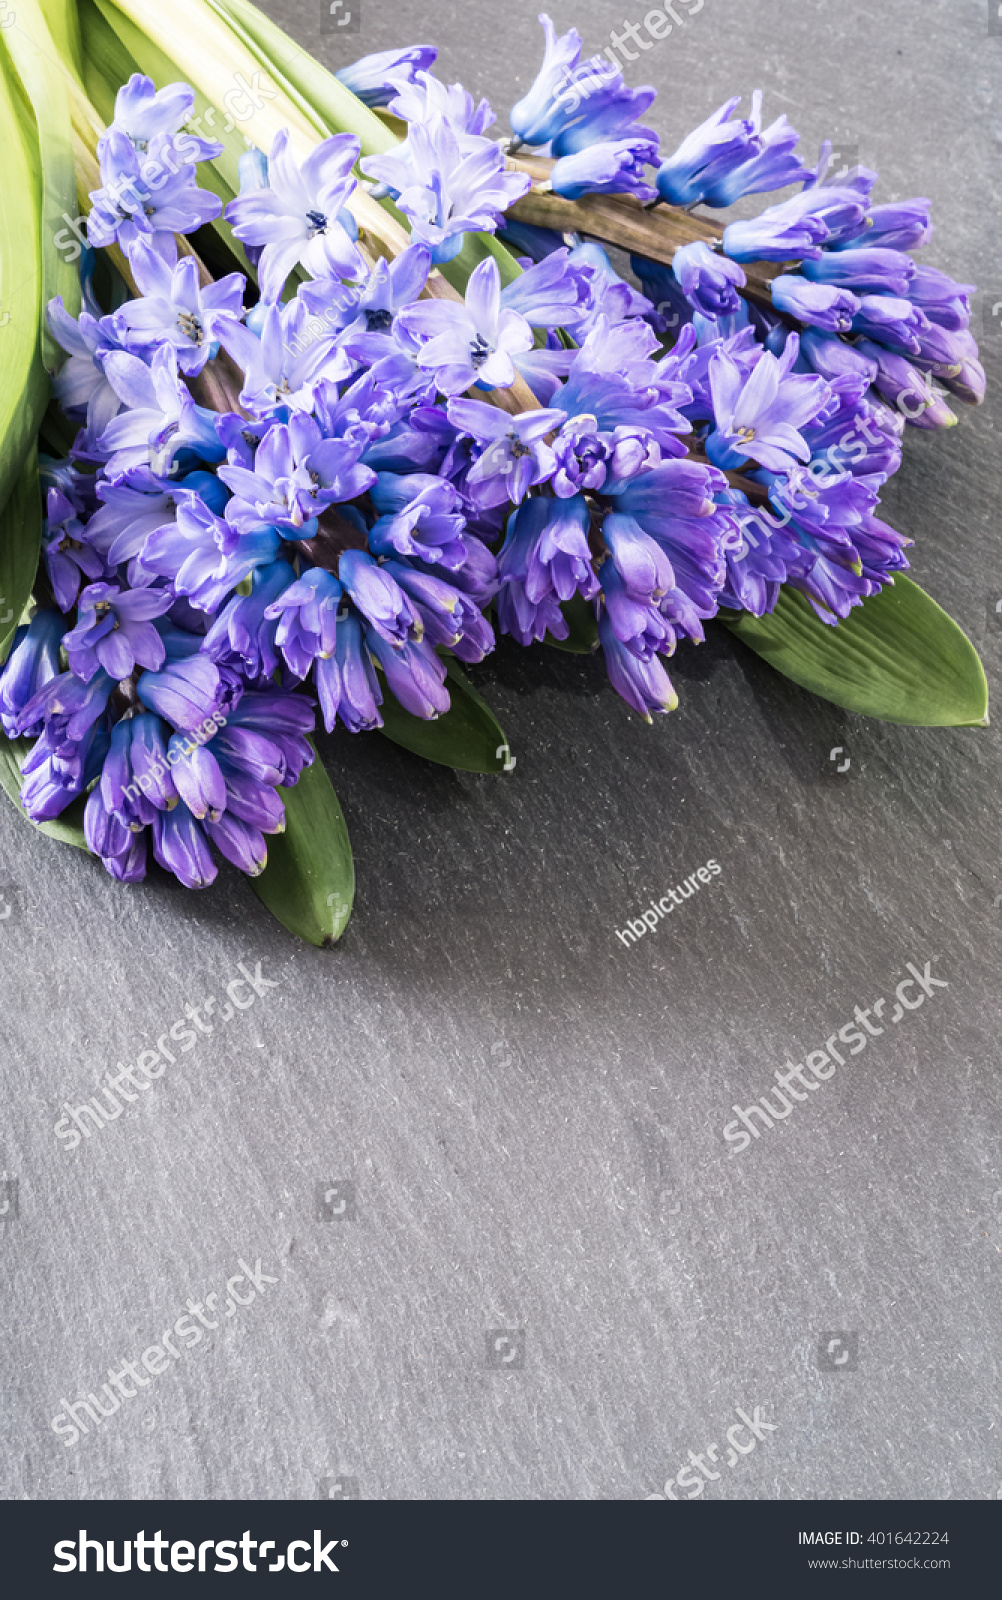 Asparagaceae Family Blooming Hyacinths In April Blue Flowers With